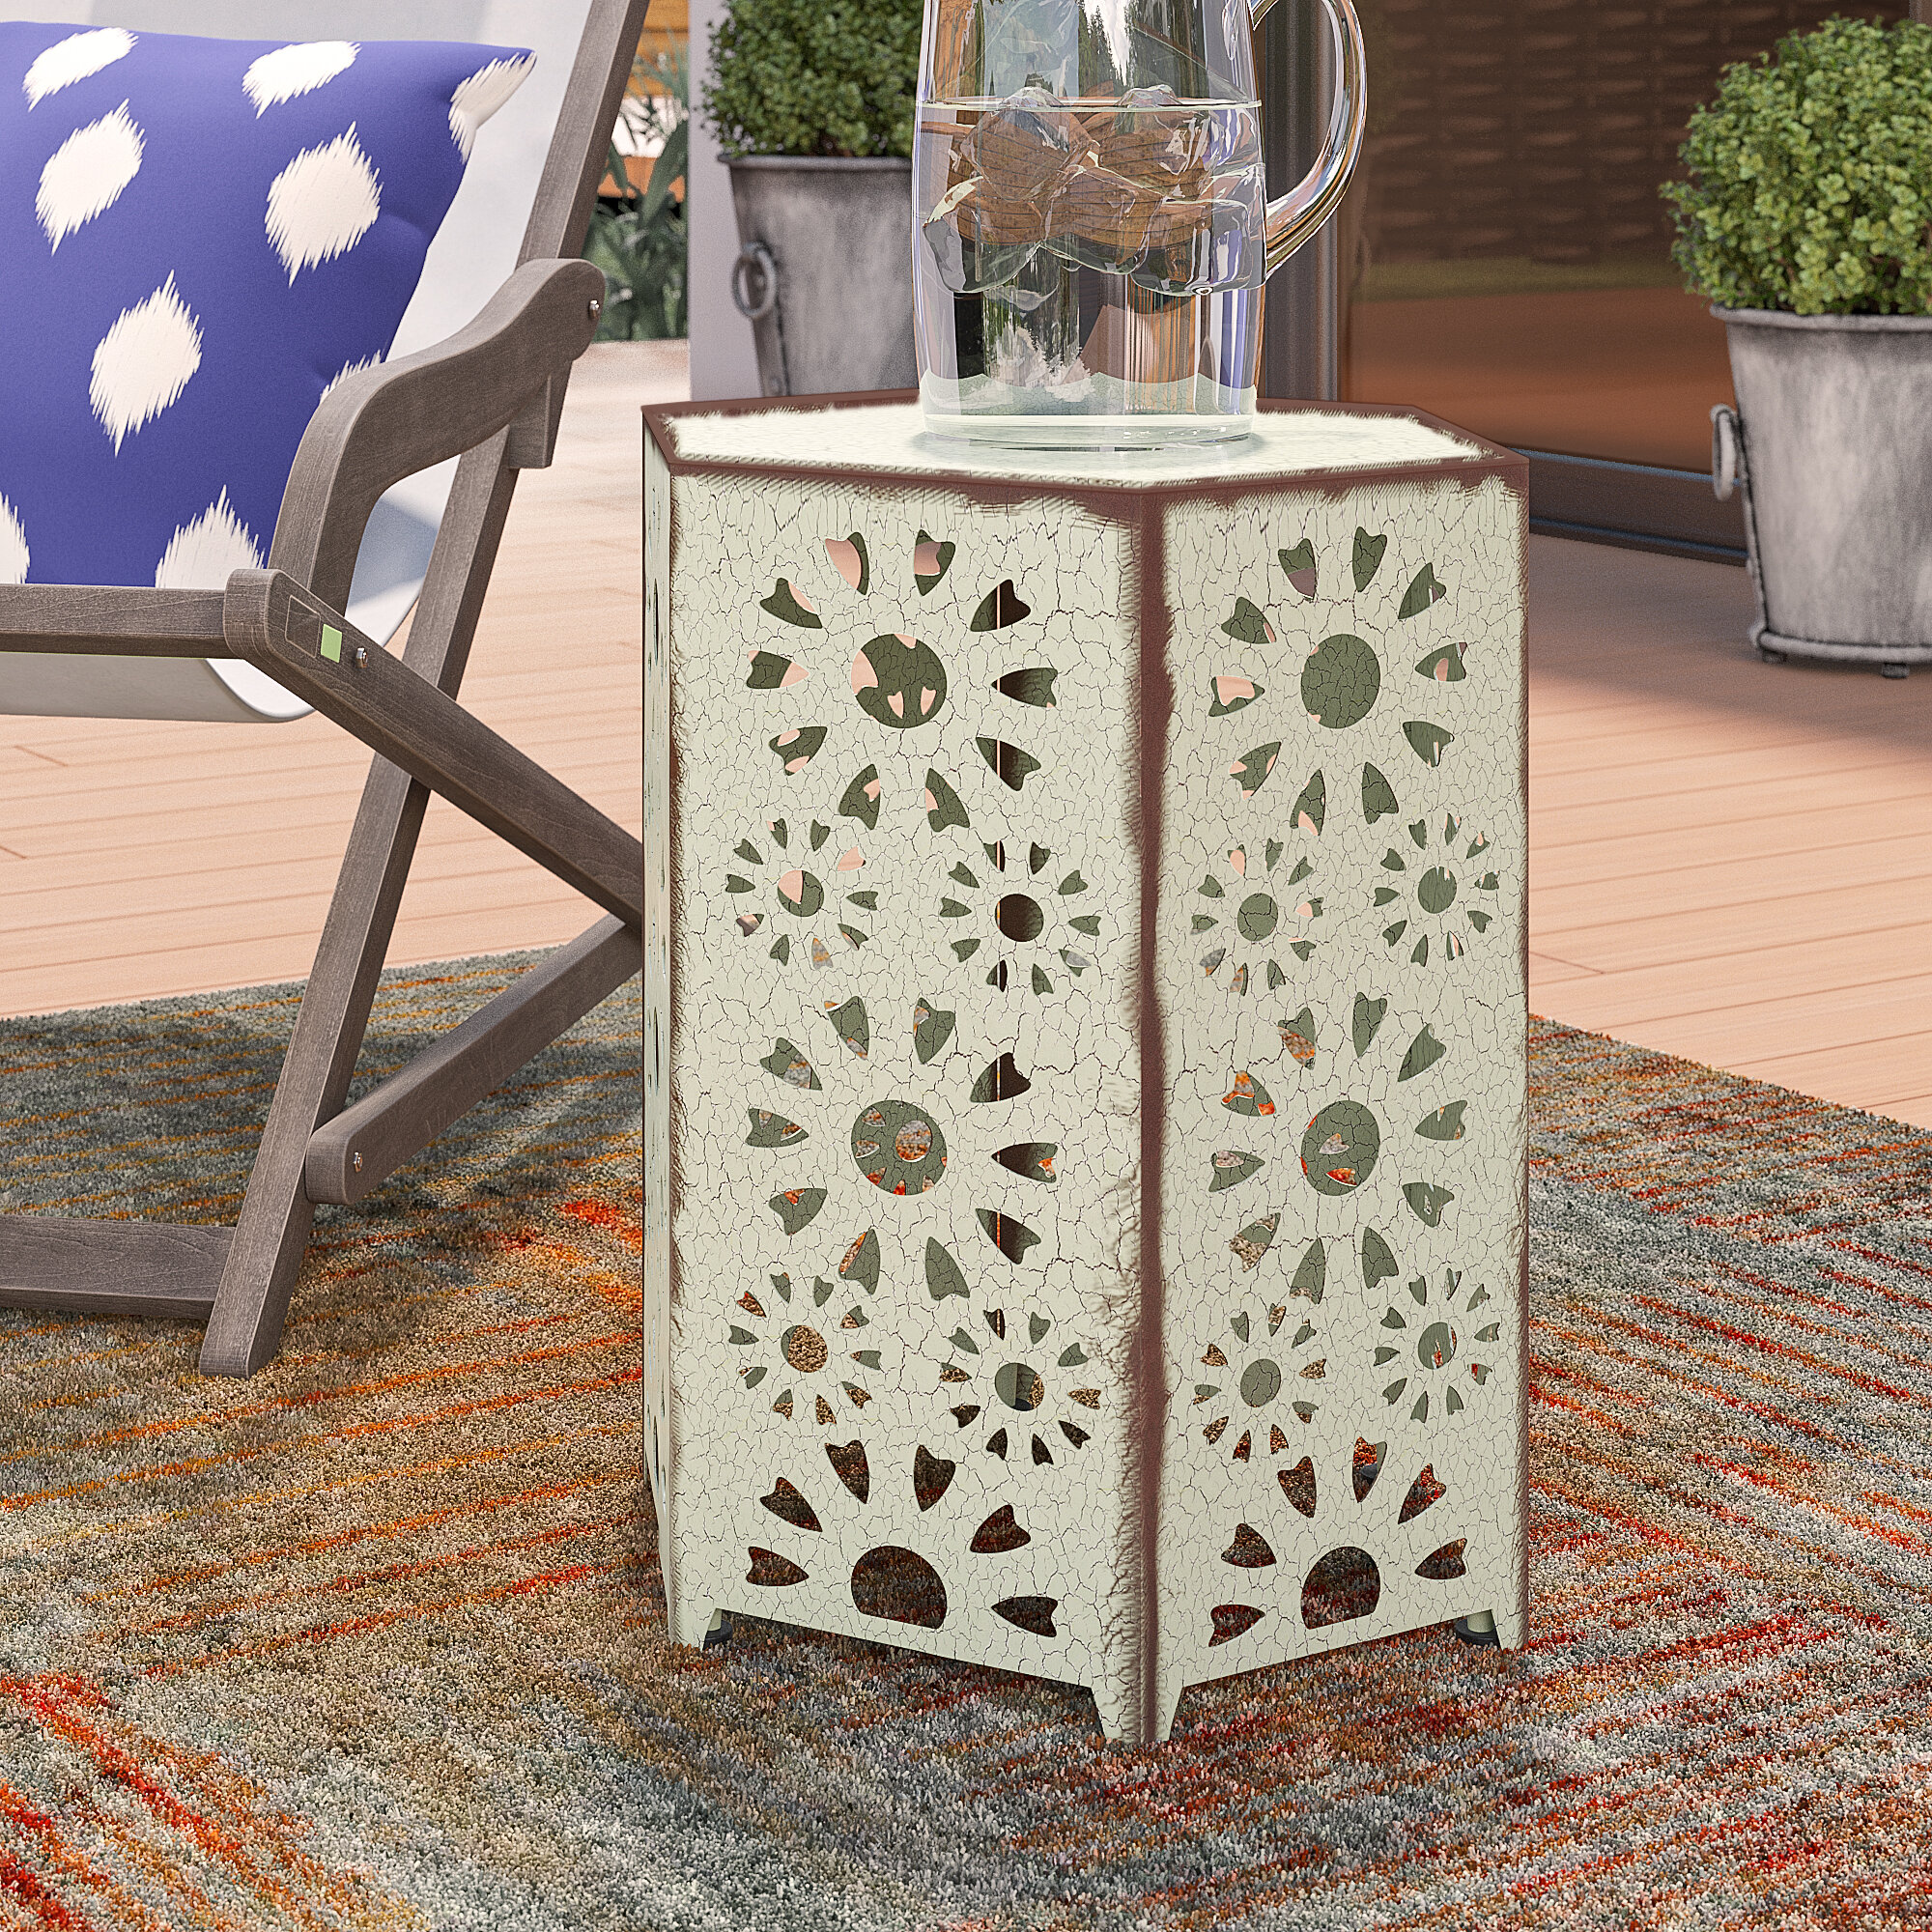 balentine outdoor iron end table reviews joss main ifrane accent white wood mirror round fitted tablecloths safavieh coffee stool carpet door trim wicker target marble style small